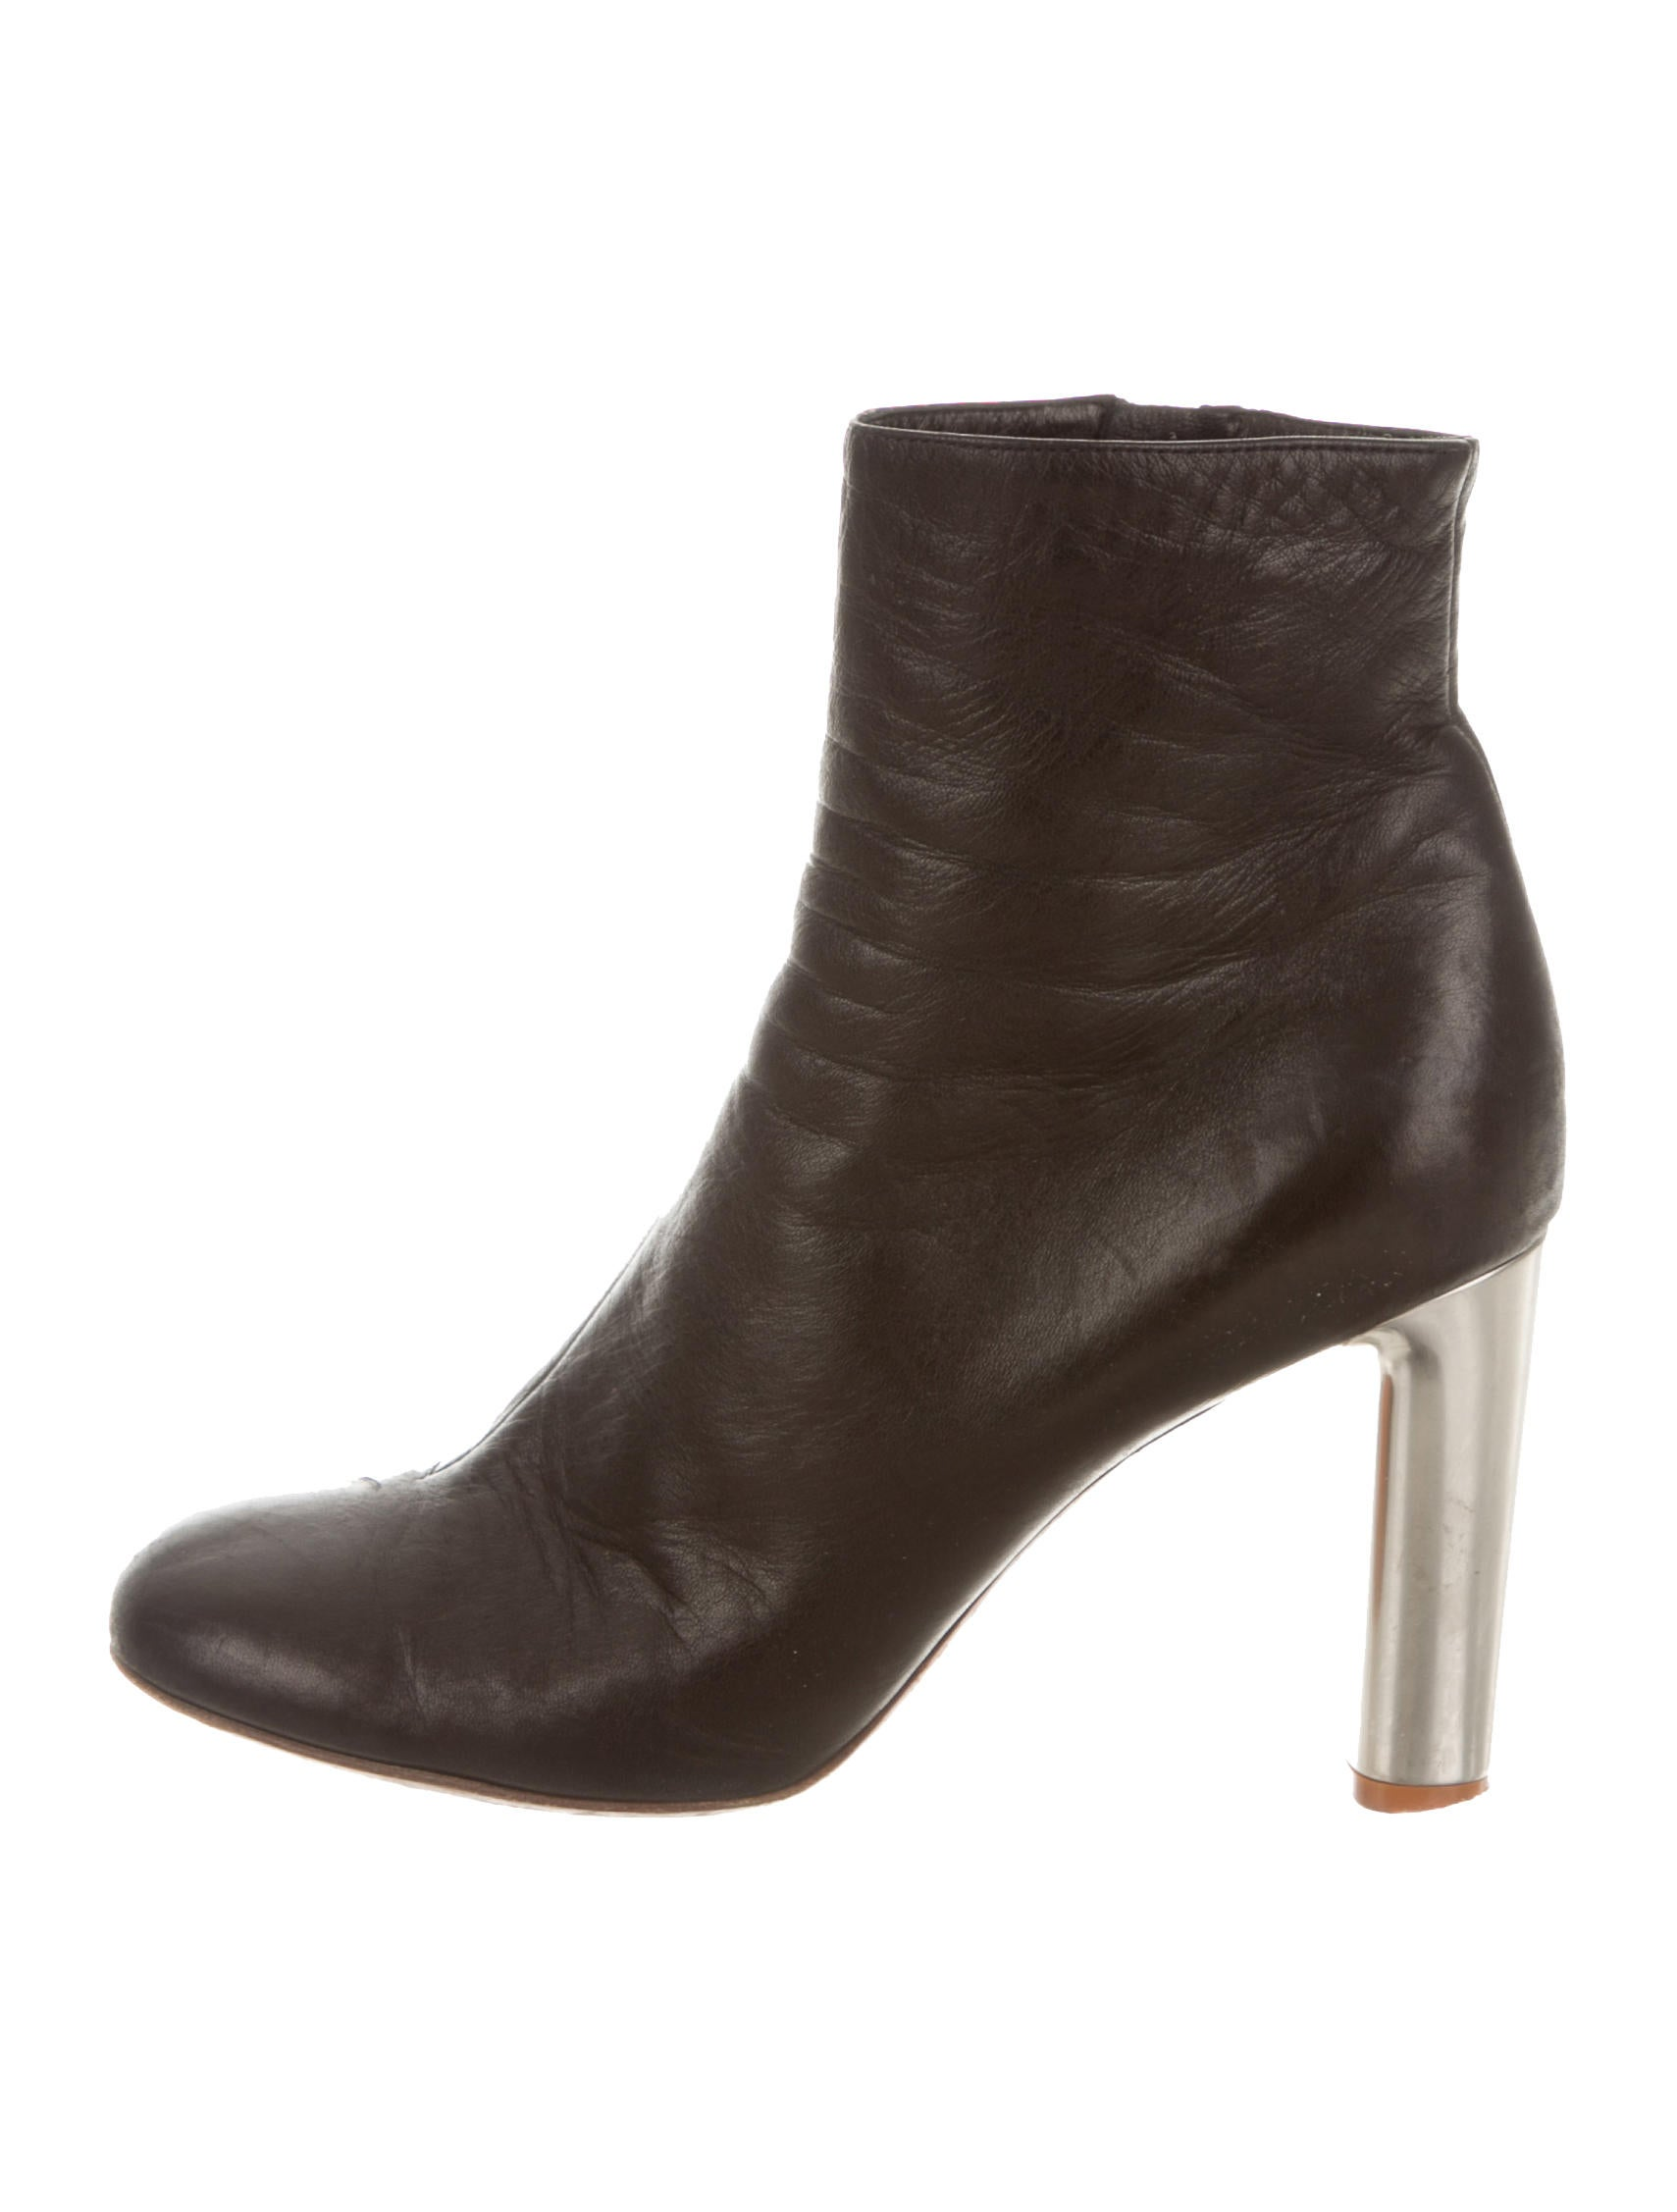 c 233 line leather square toe ankle boots shoes cel40603